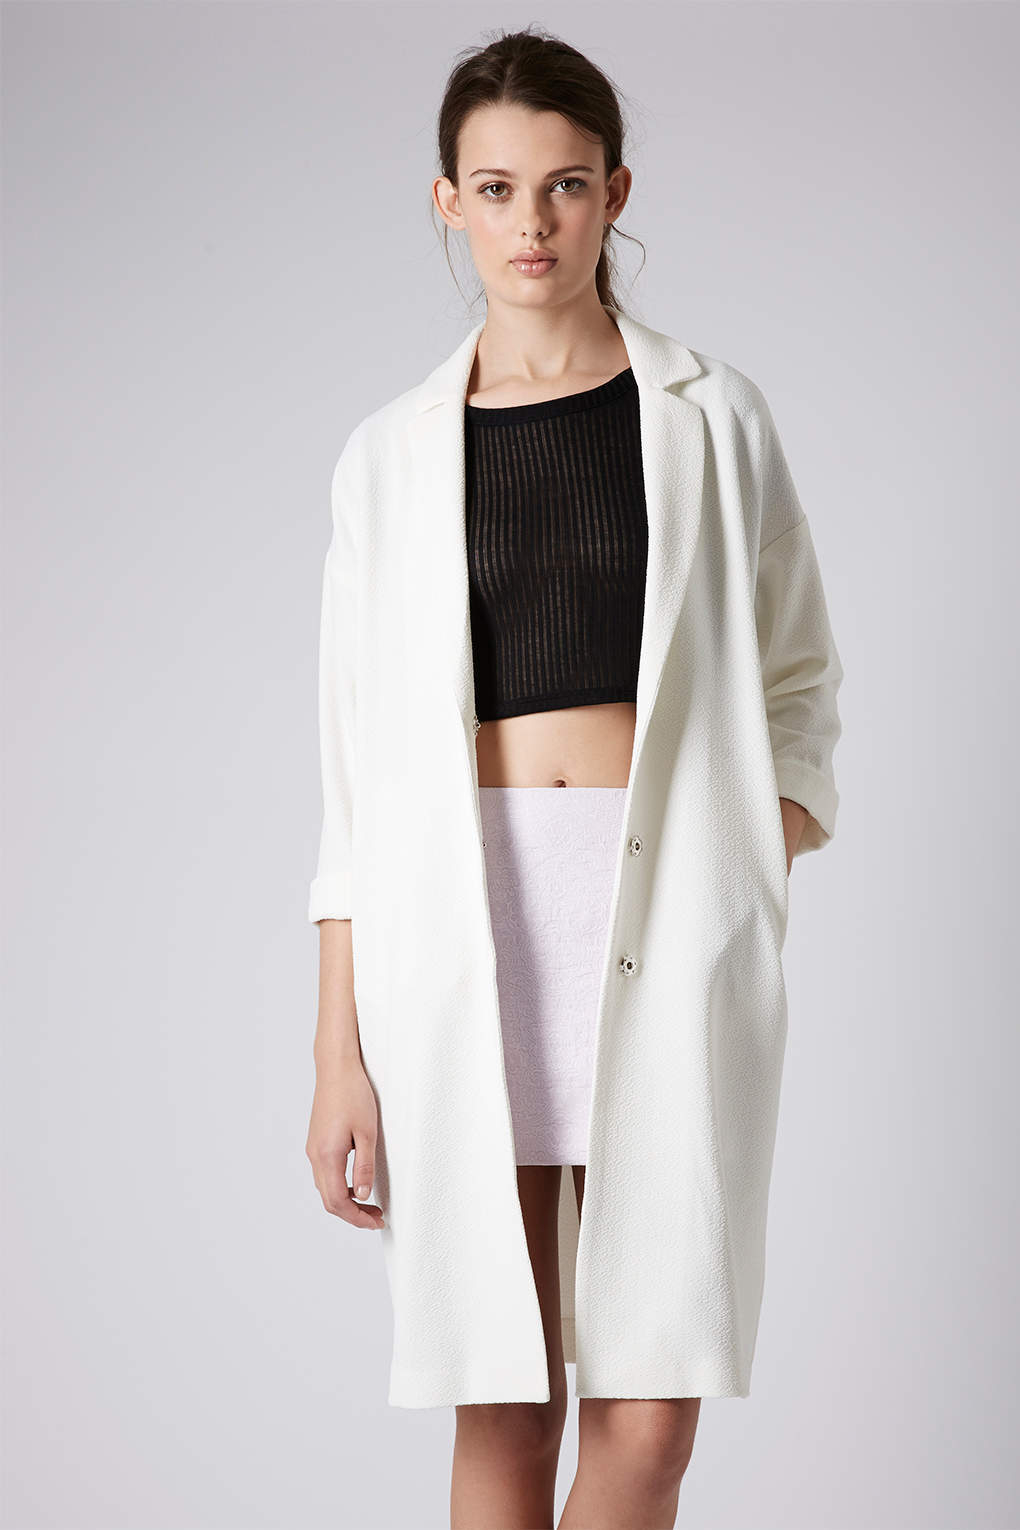 Topshop Textured Long Line Duster Coat in White | Lyst